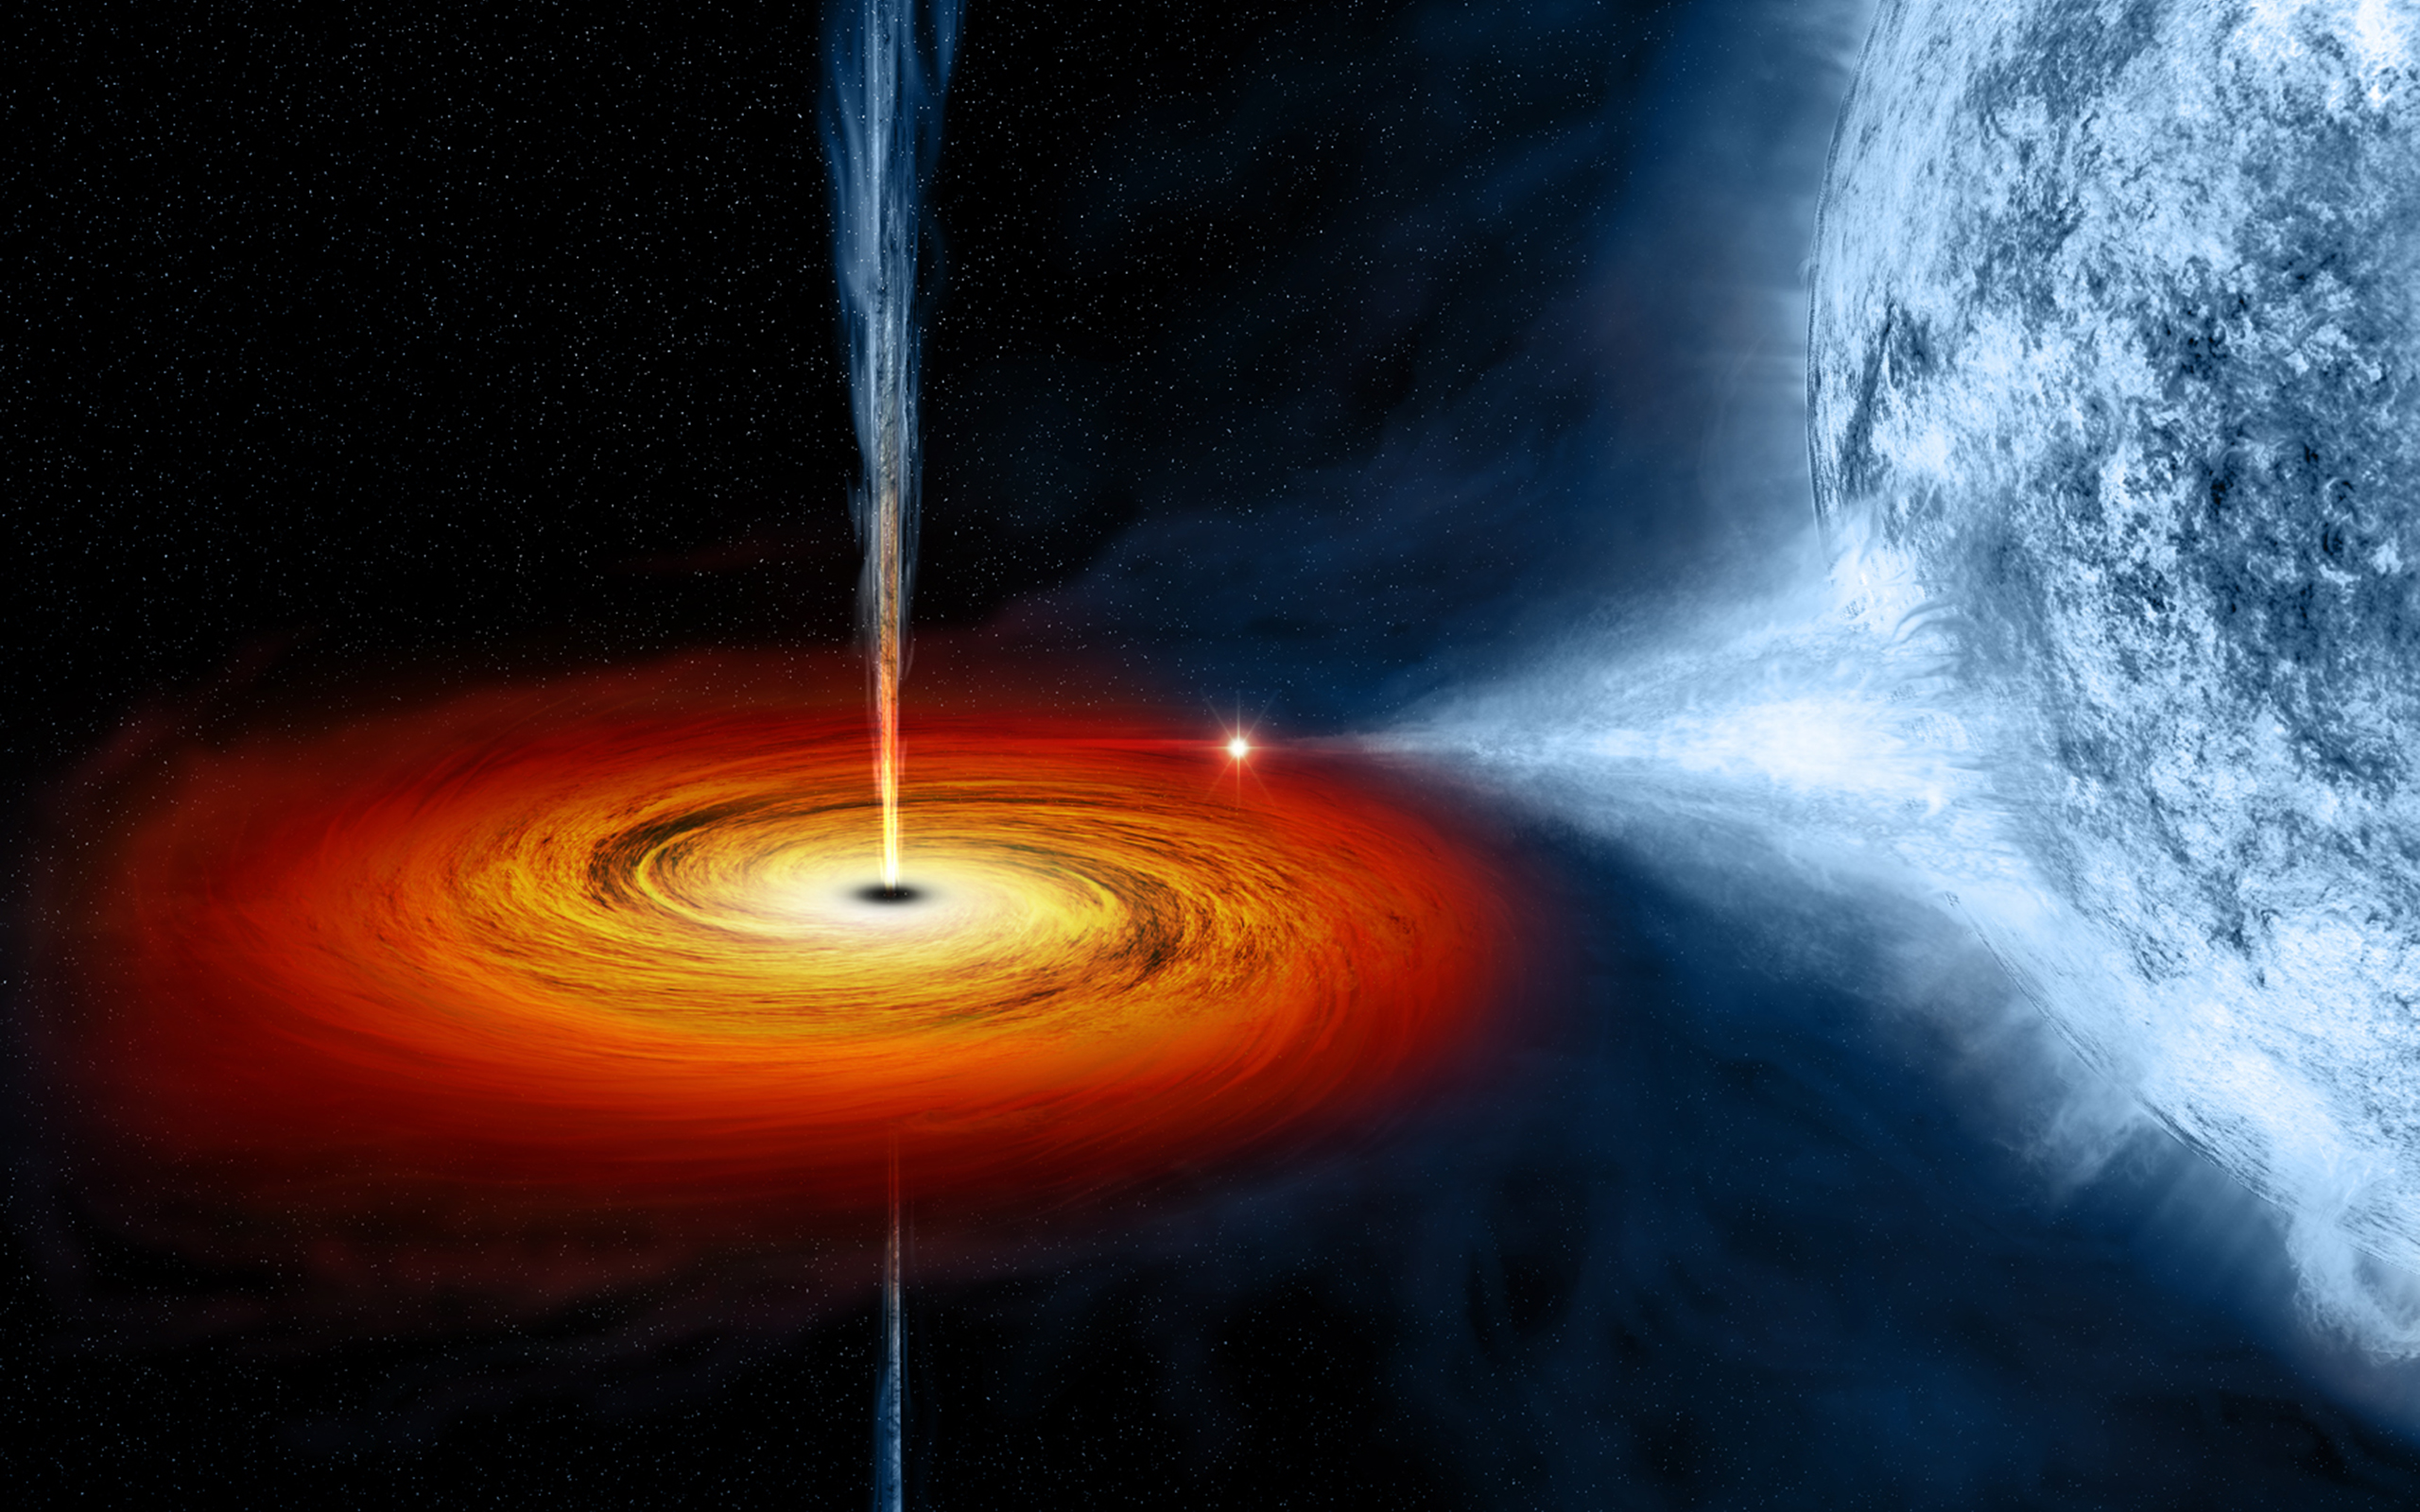 Background Images Wallpaper Abyss: 35 Black Hole HD Wallpapers